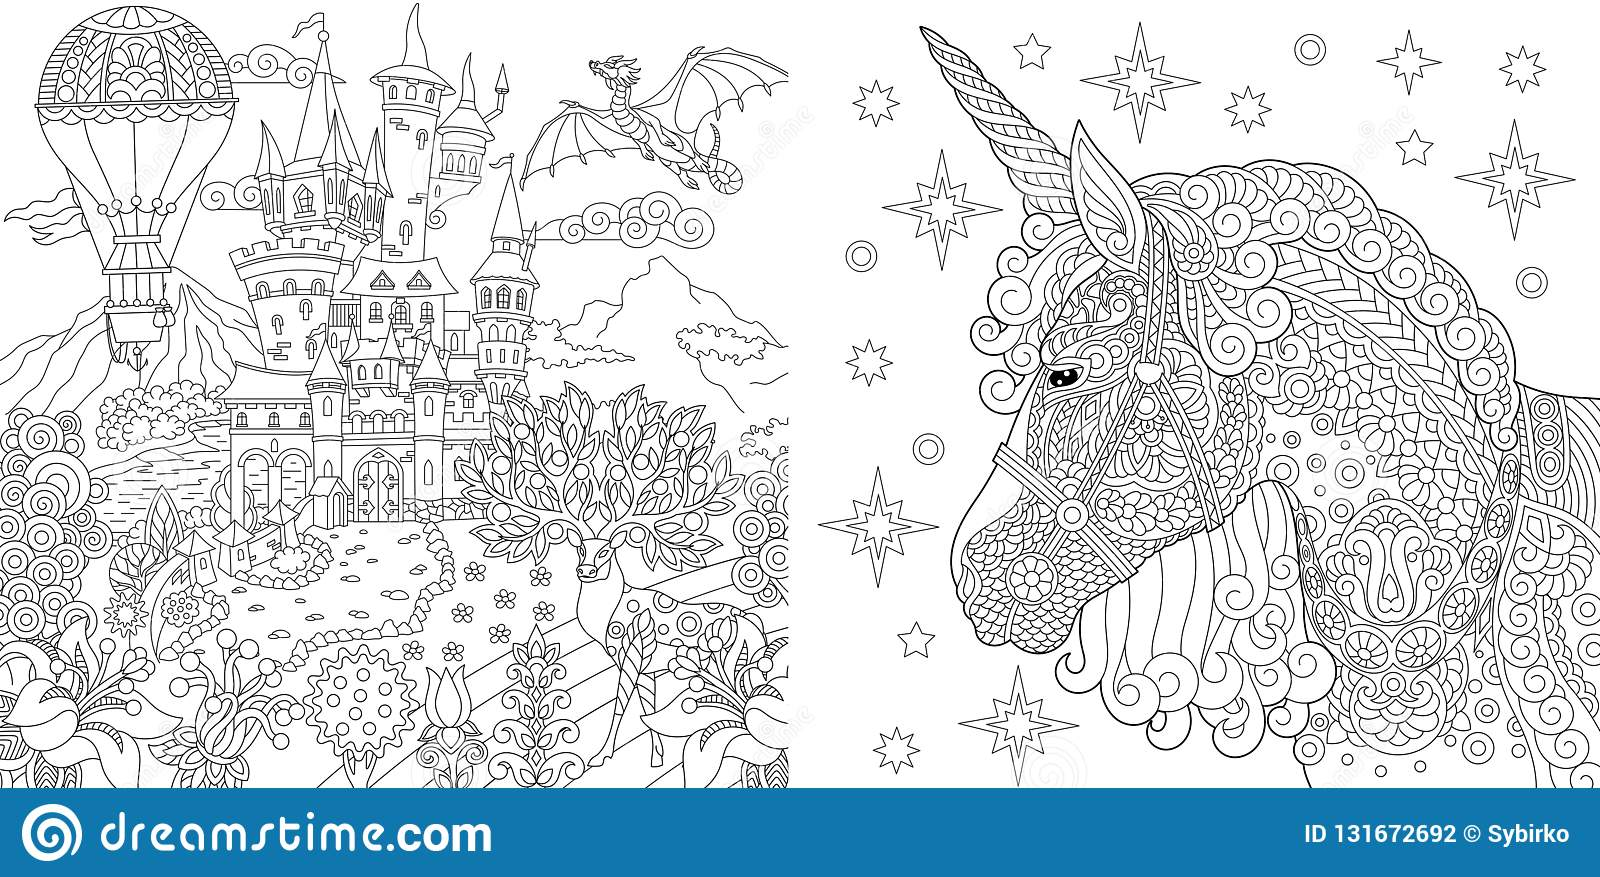 Colouring Cartoons Illustrations Amp Vector Stock Images